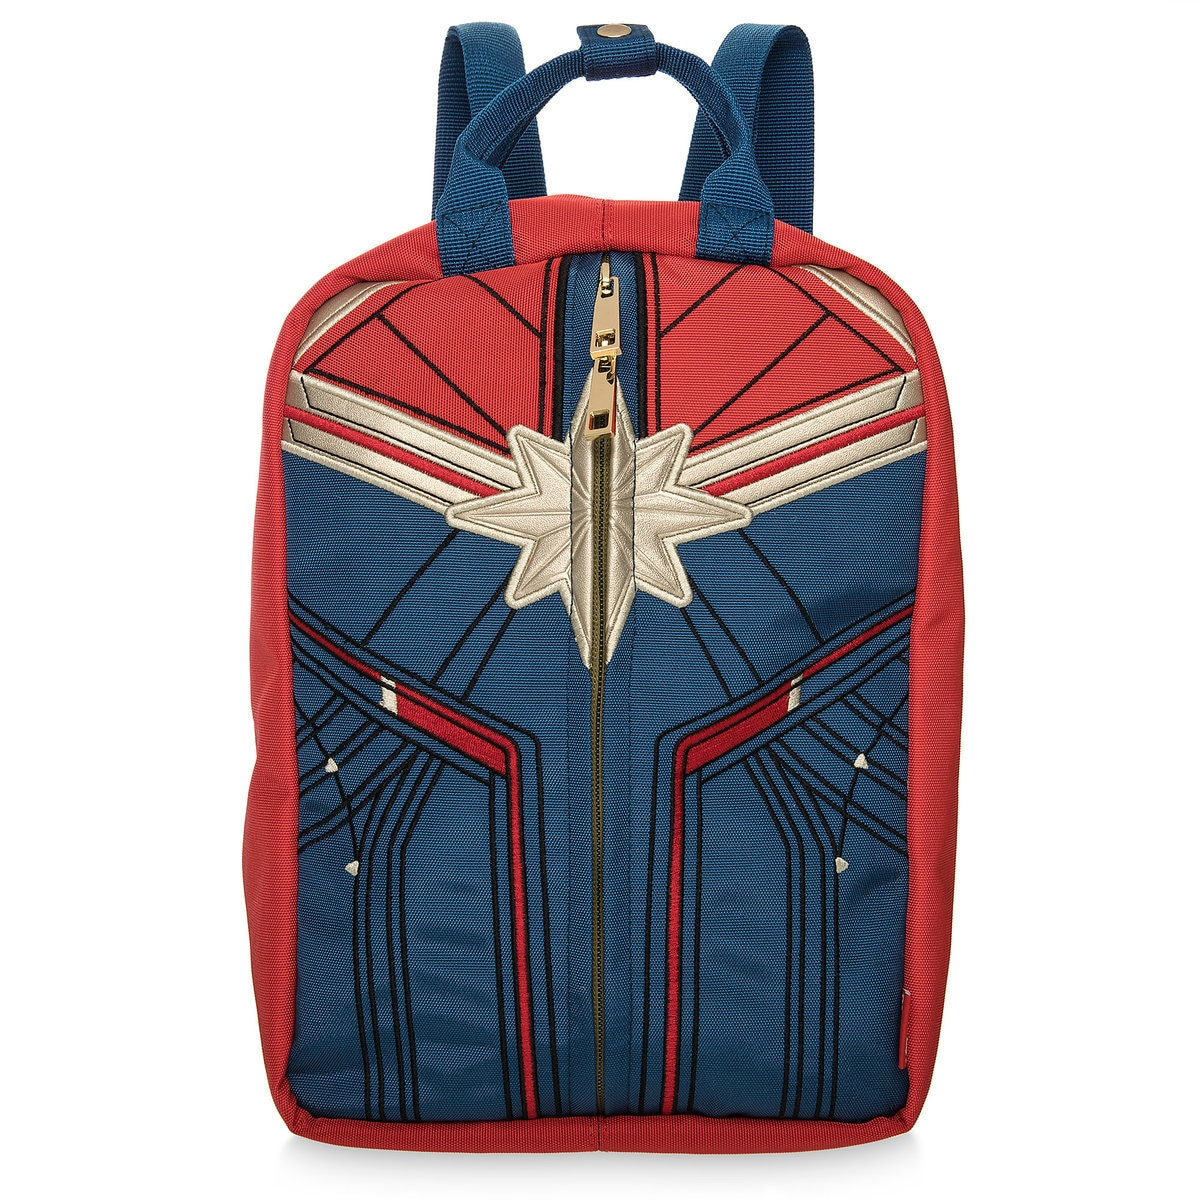 36314093ca Product Image of Marvel's Captain Marvel Reversible Mini Backpack and  Handbag for Women # 1